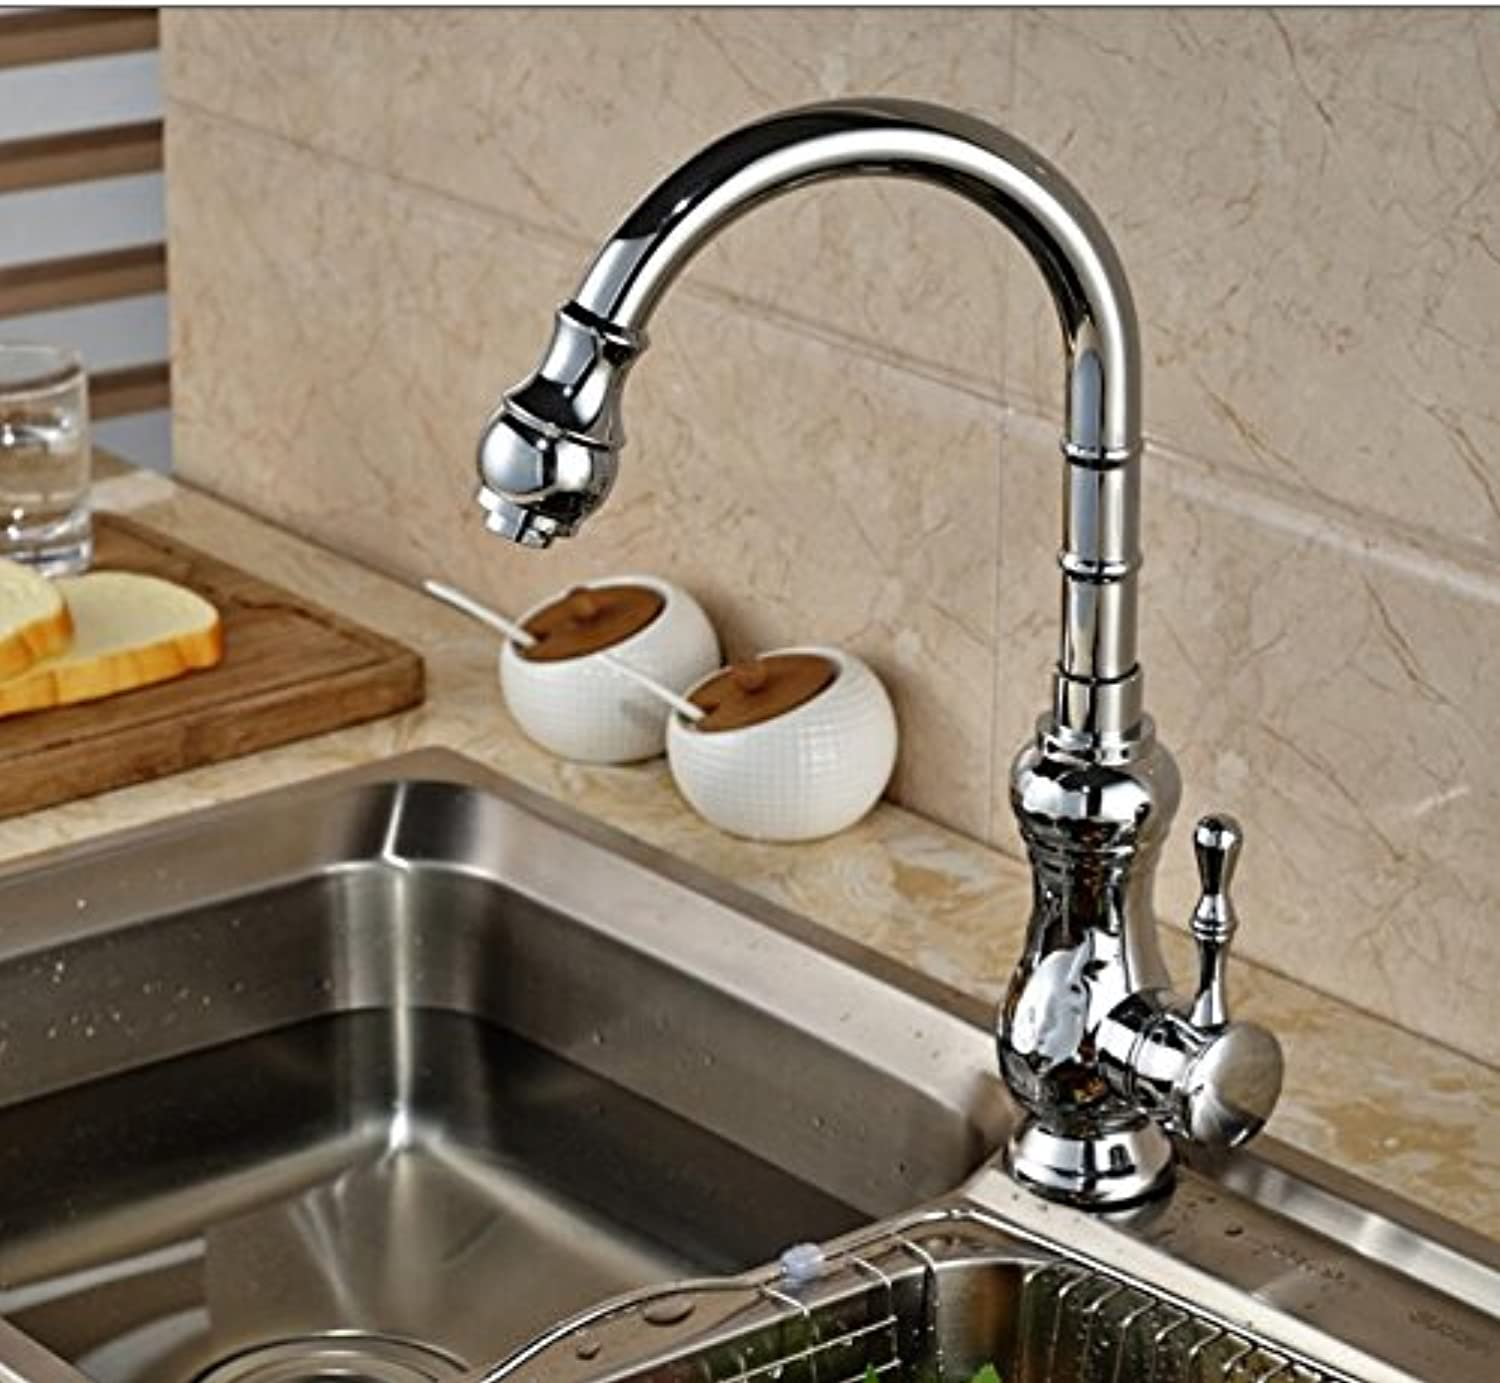 Tw Modern Chrome Finished Pull-out kitchen faucet Deck Mounted Mixer tap